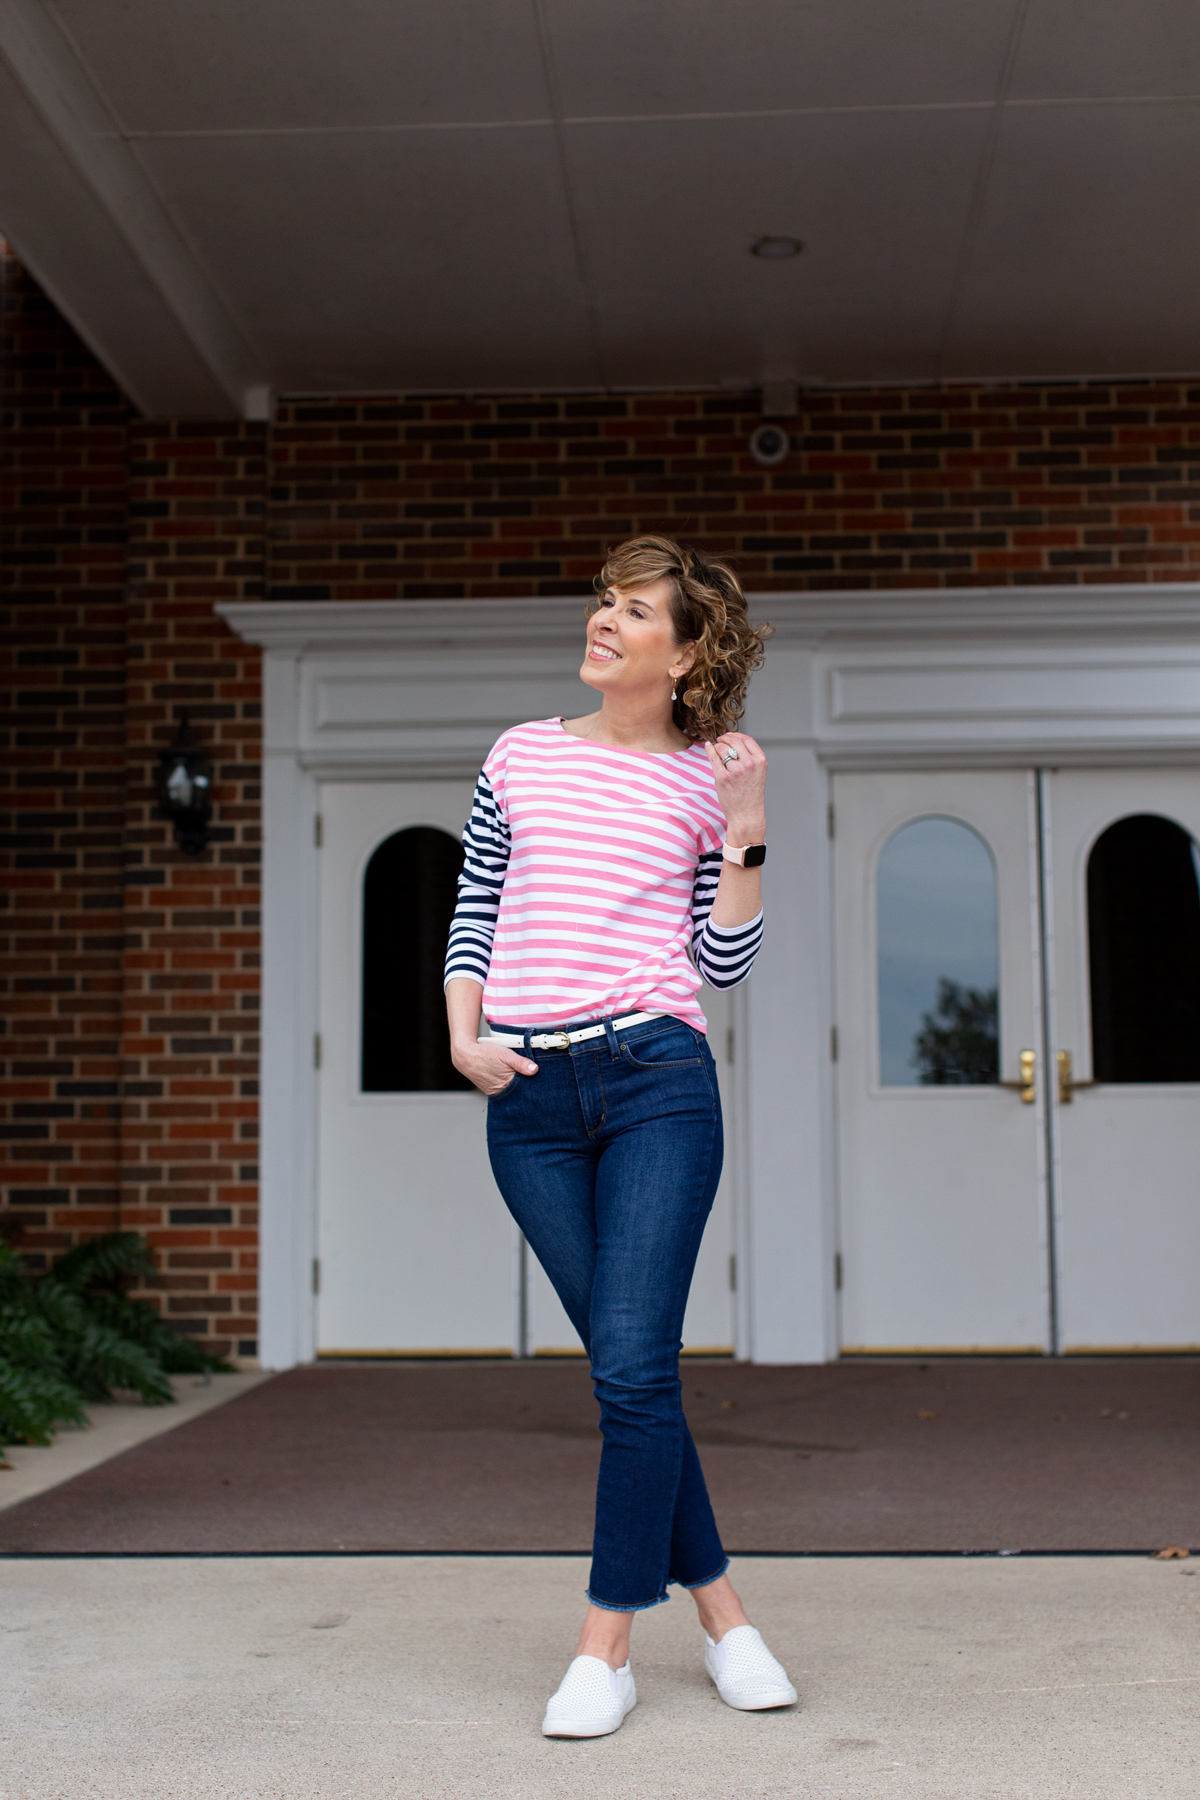 woman wearing striped shirt standing in front of white doors